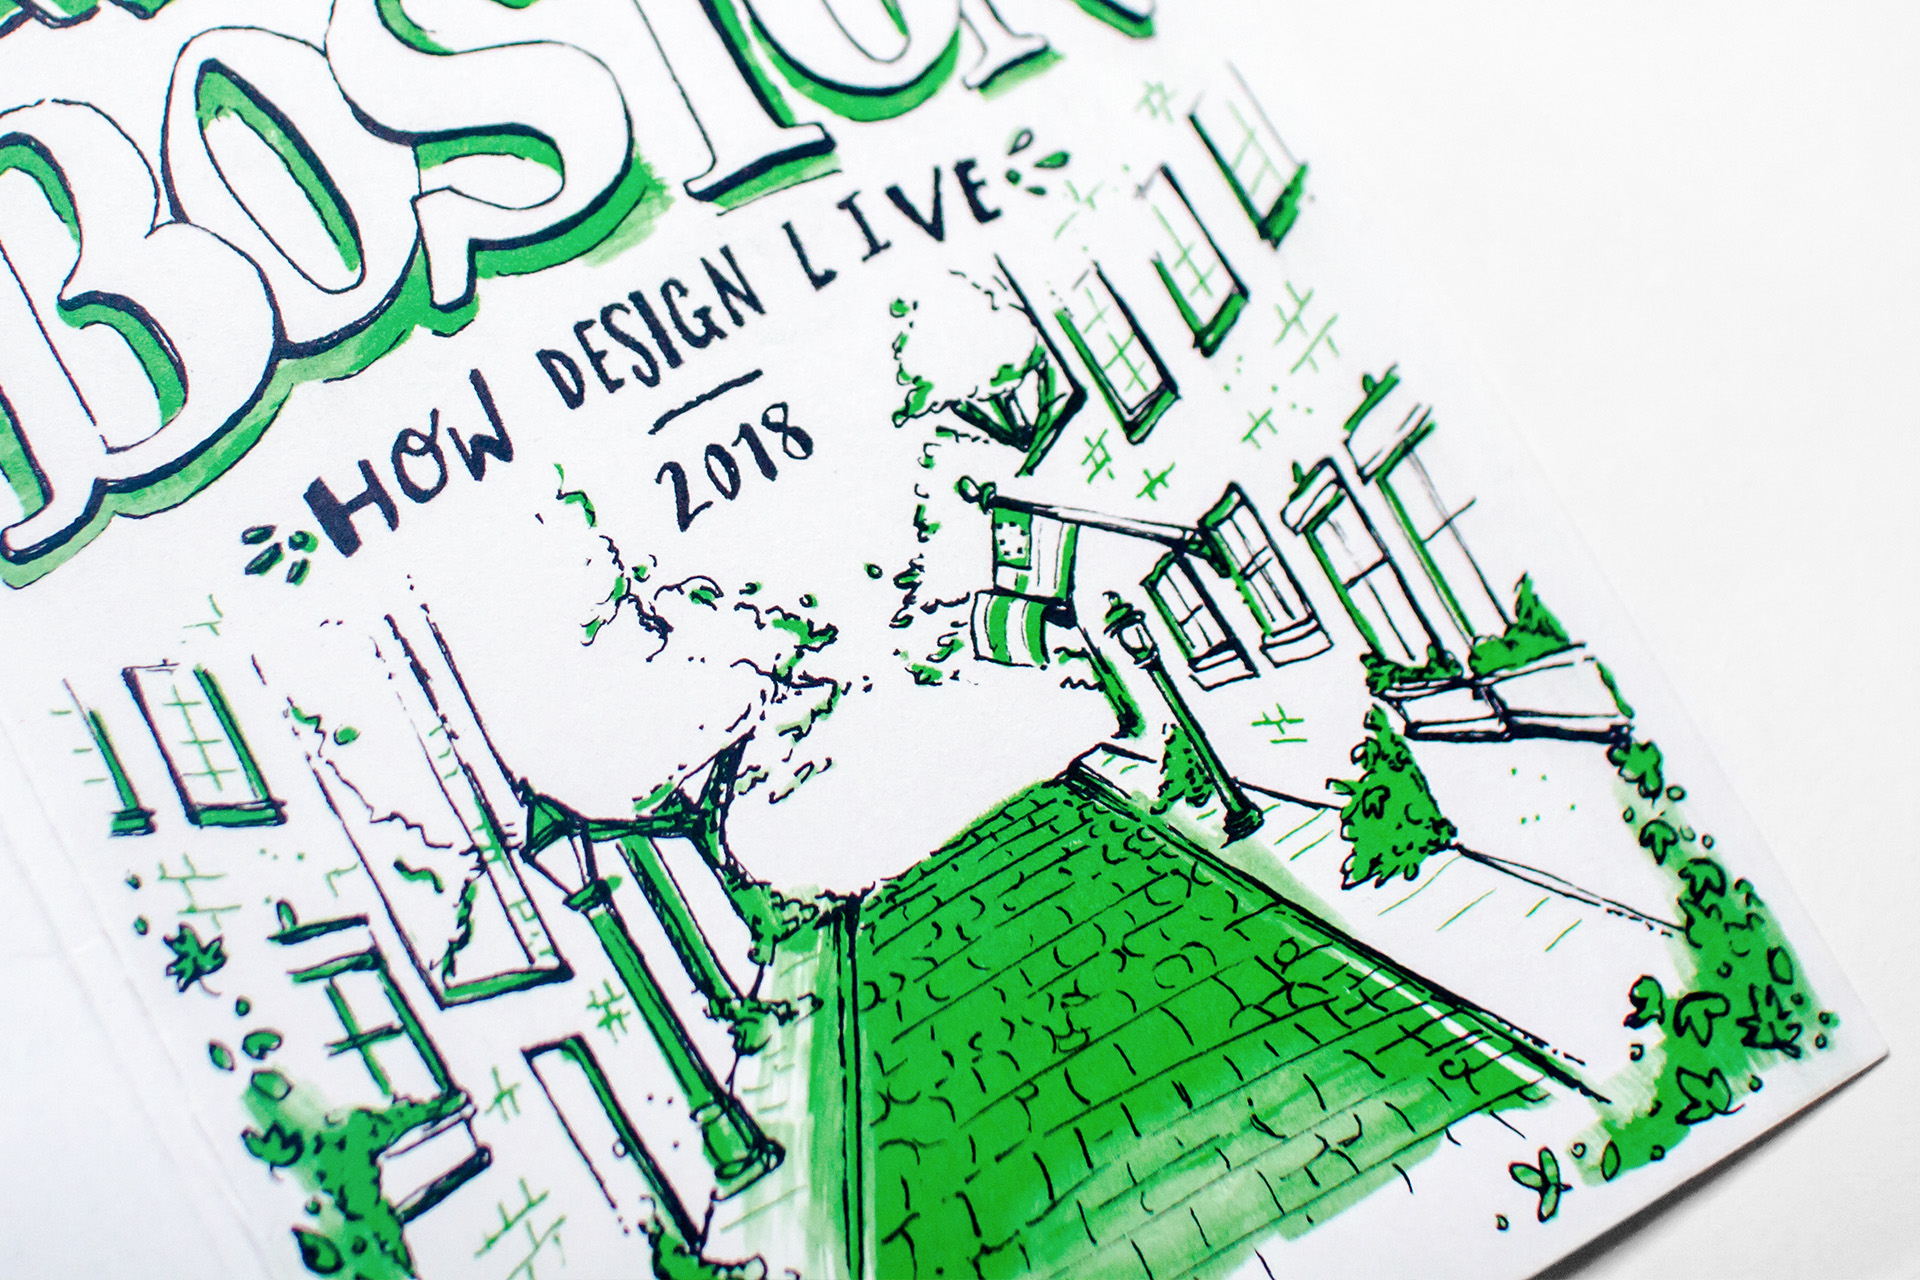 Detail of the front cover illustration of Acorn Street in pen and ink hand drawn lines with spot color pop of green for the Neenah Paper presents Boston city maps at HOW Design Live conference in 2018.